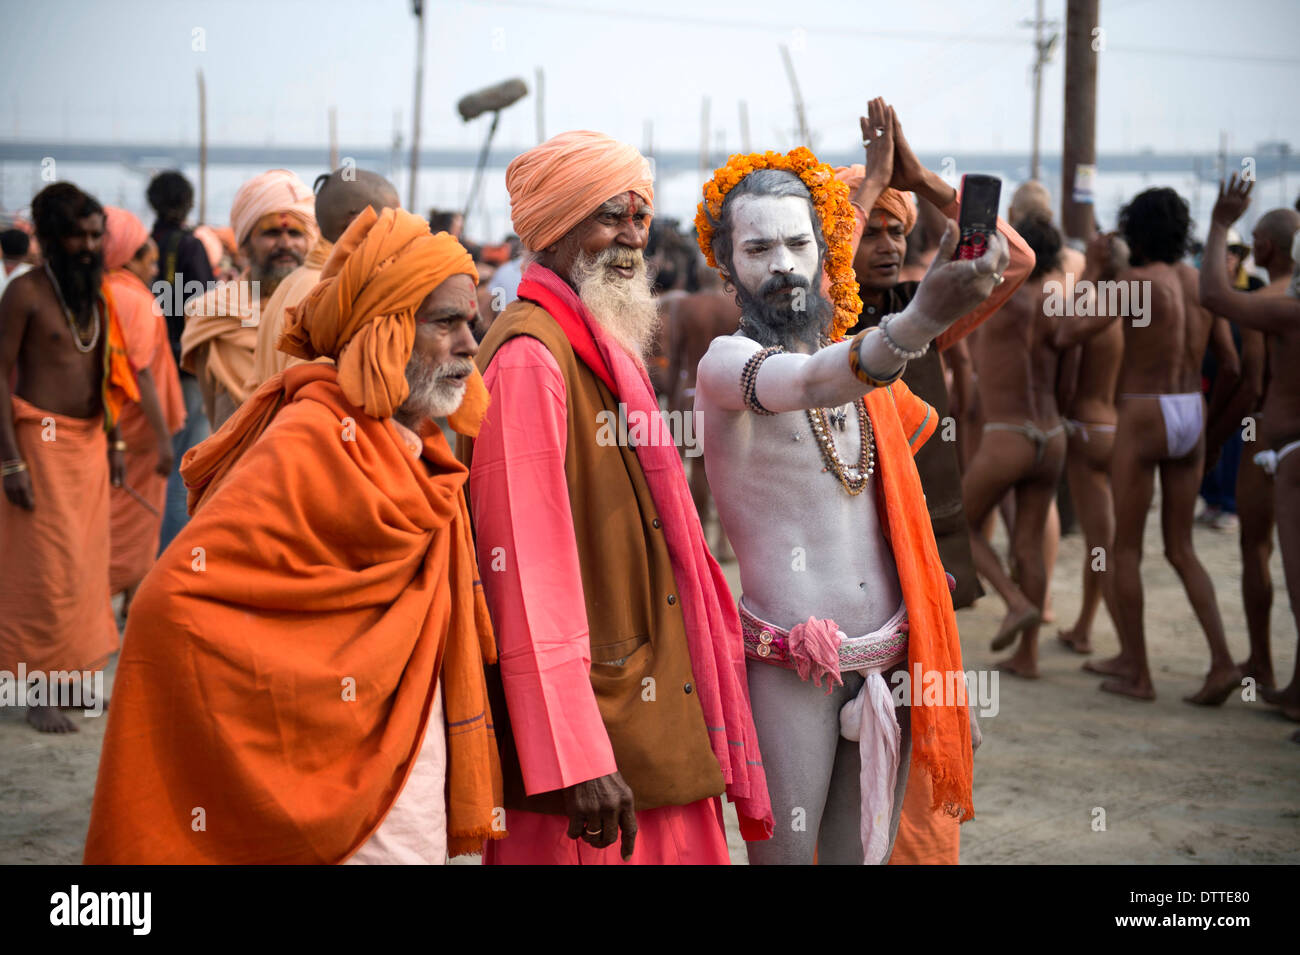 Allahabad (India) : the Maha Kumbh Mela mass Hindu pilgrimage on the Ganges river's banks (January, 2013) - Stock Image